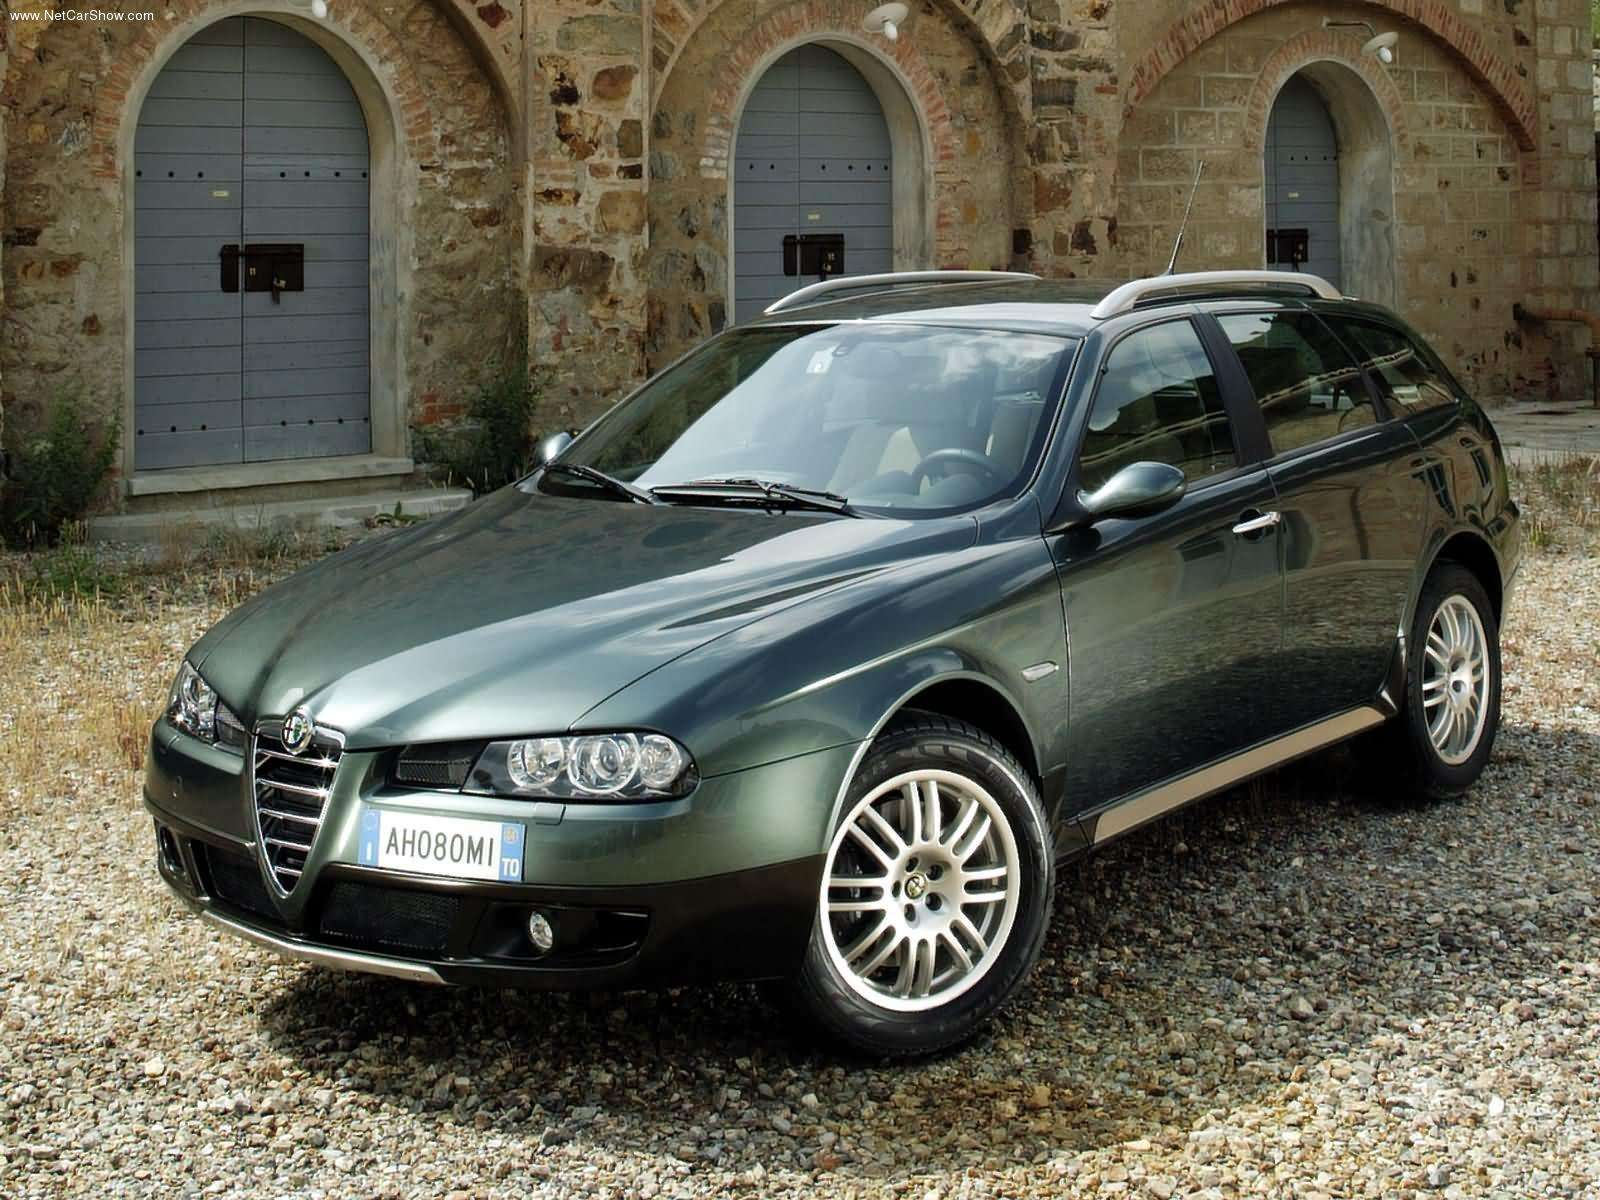 Workshop Manual For Alfa Romeo 156